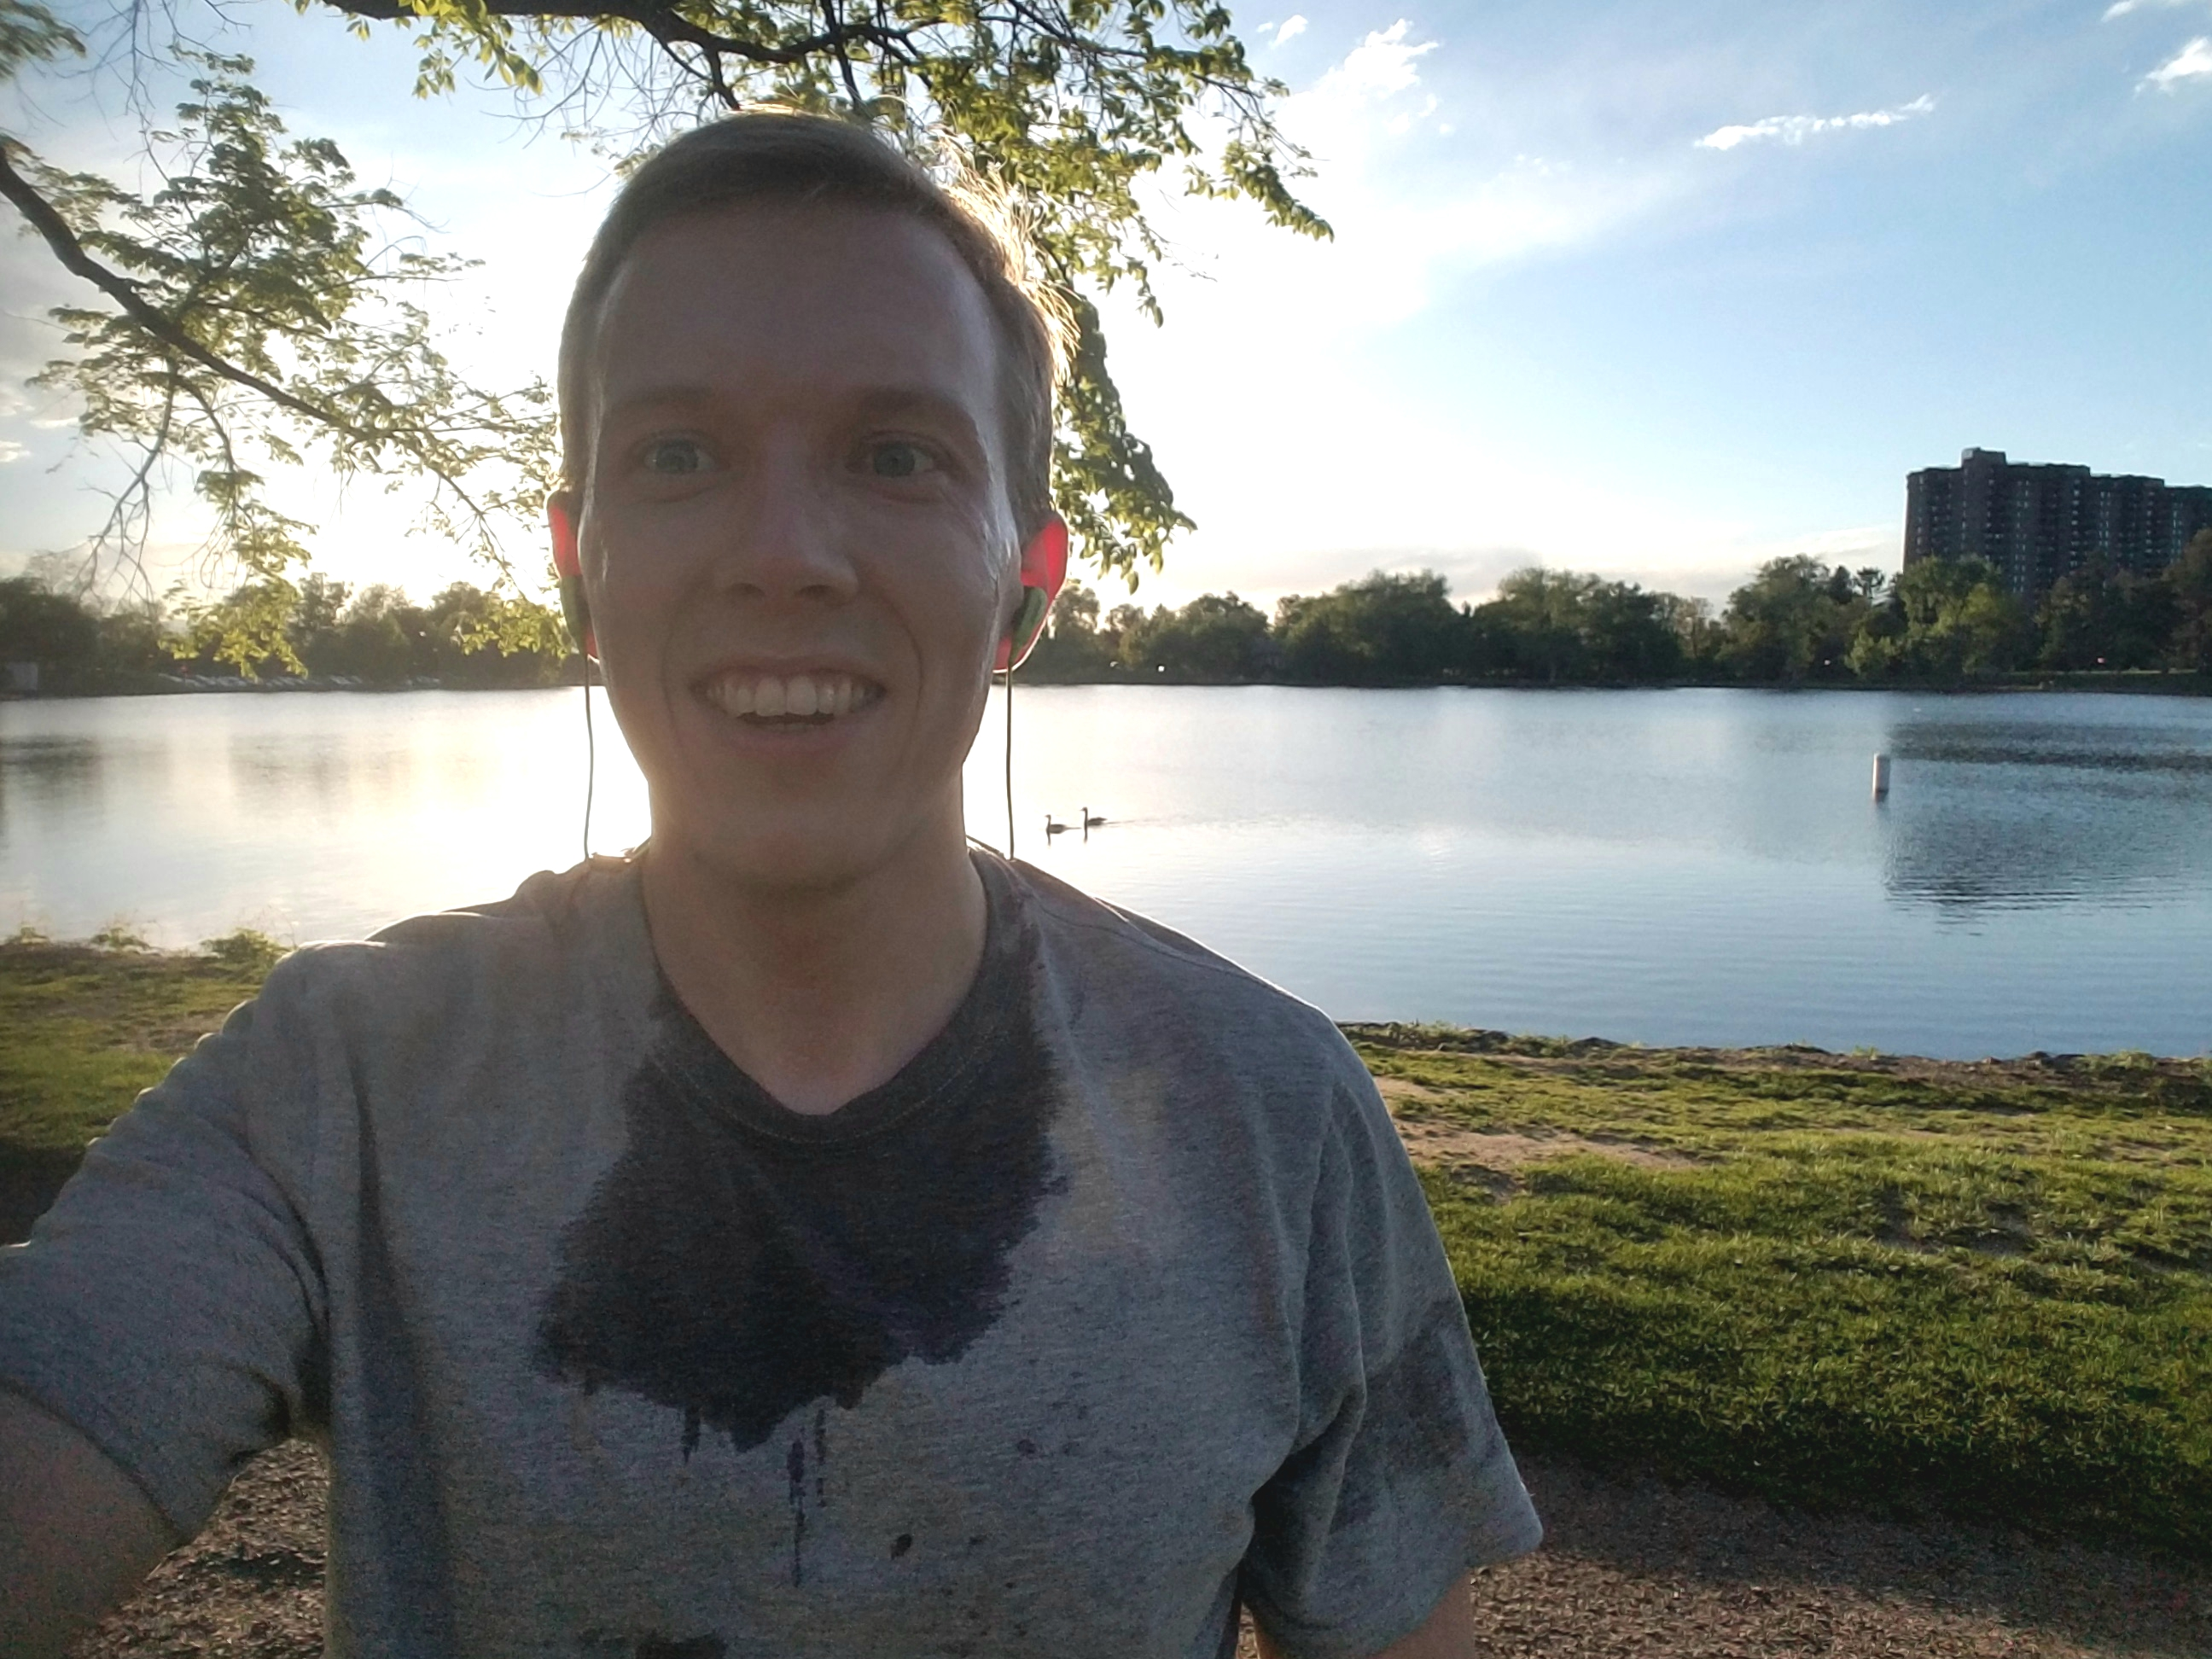 Sweaty person with earbuds in, standing in front of Denver lake.